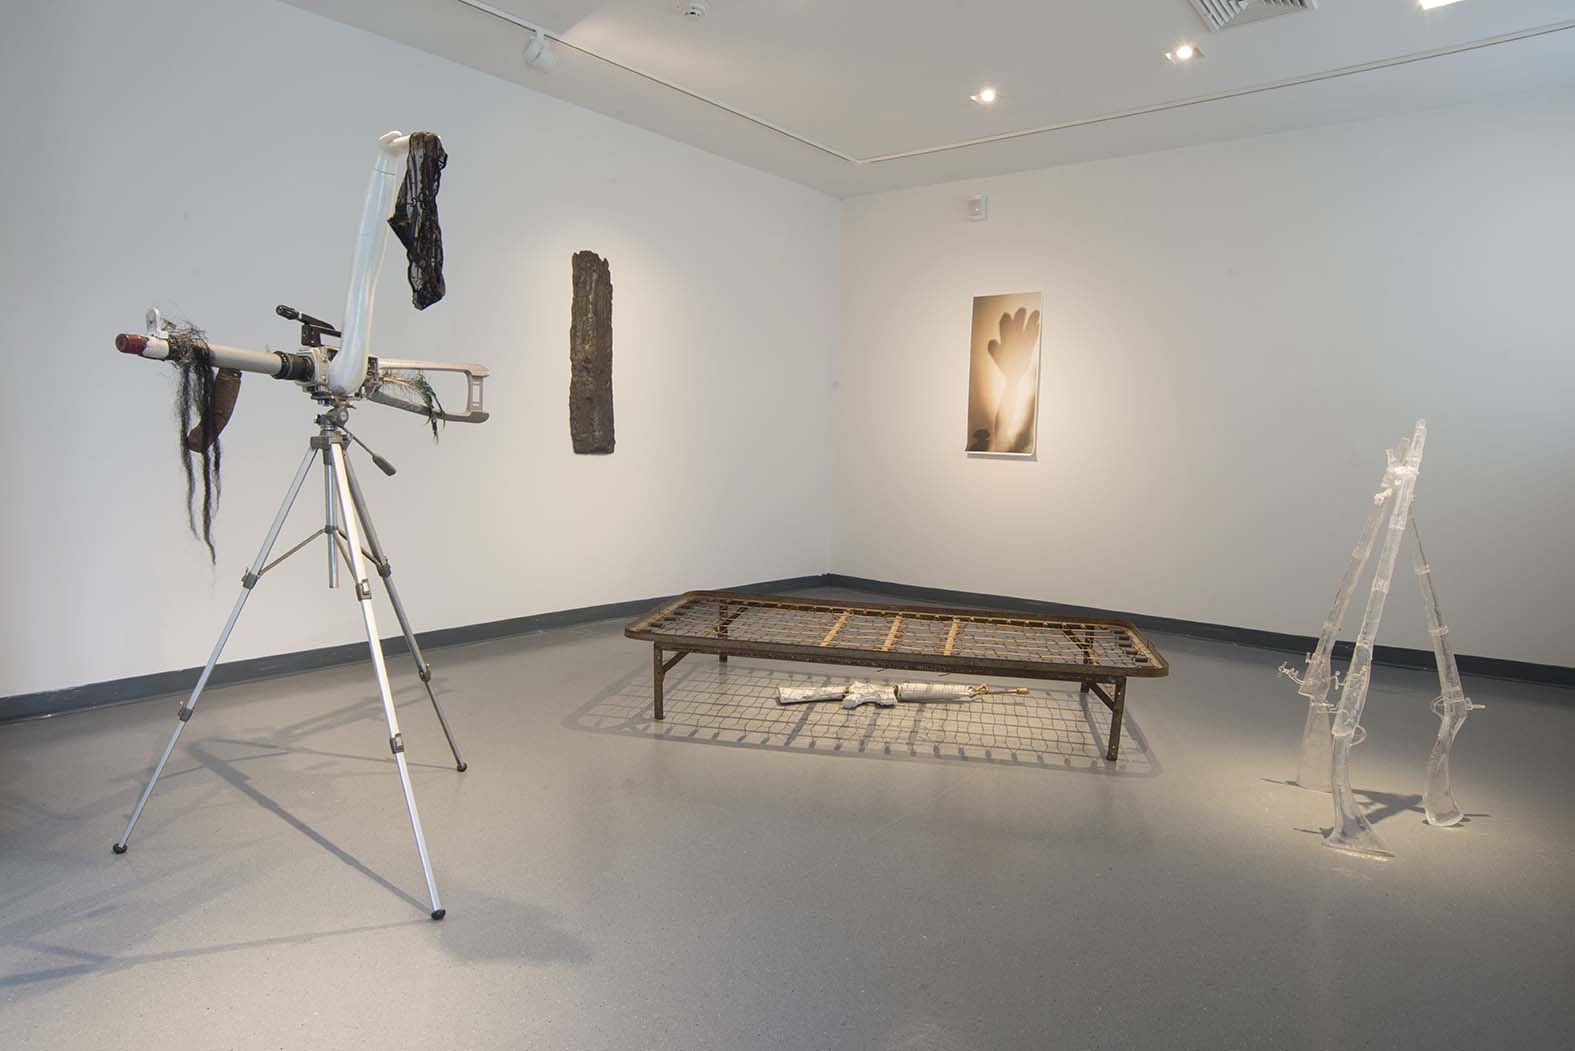 Installation view of In Medias Res, at Guttenberg Arts, 2015. (l to r) sex tape, exo sis, dream and lie, shadow study, half the story has never been told.